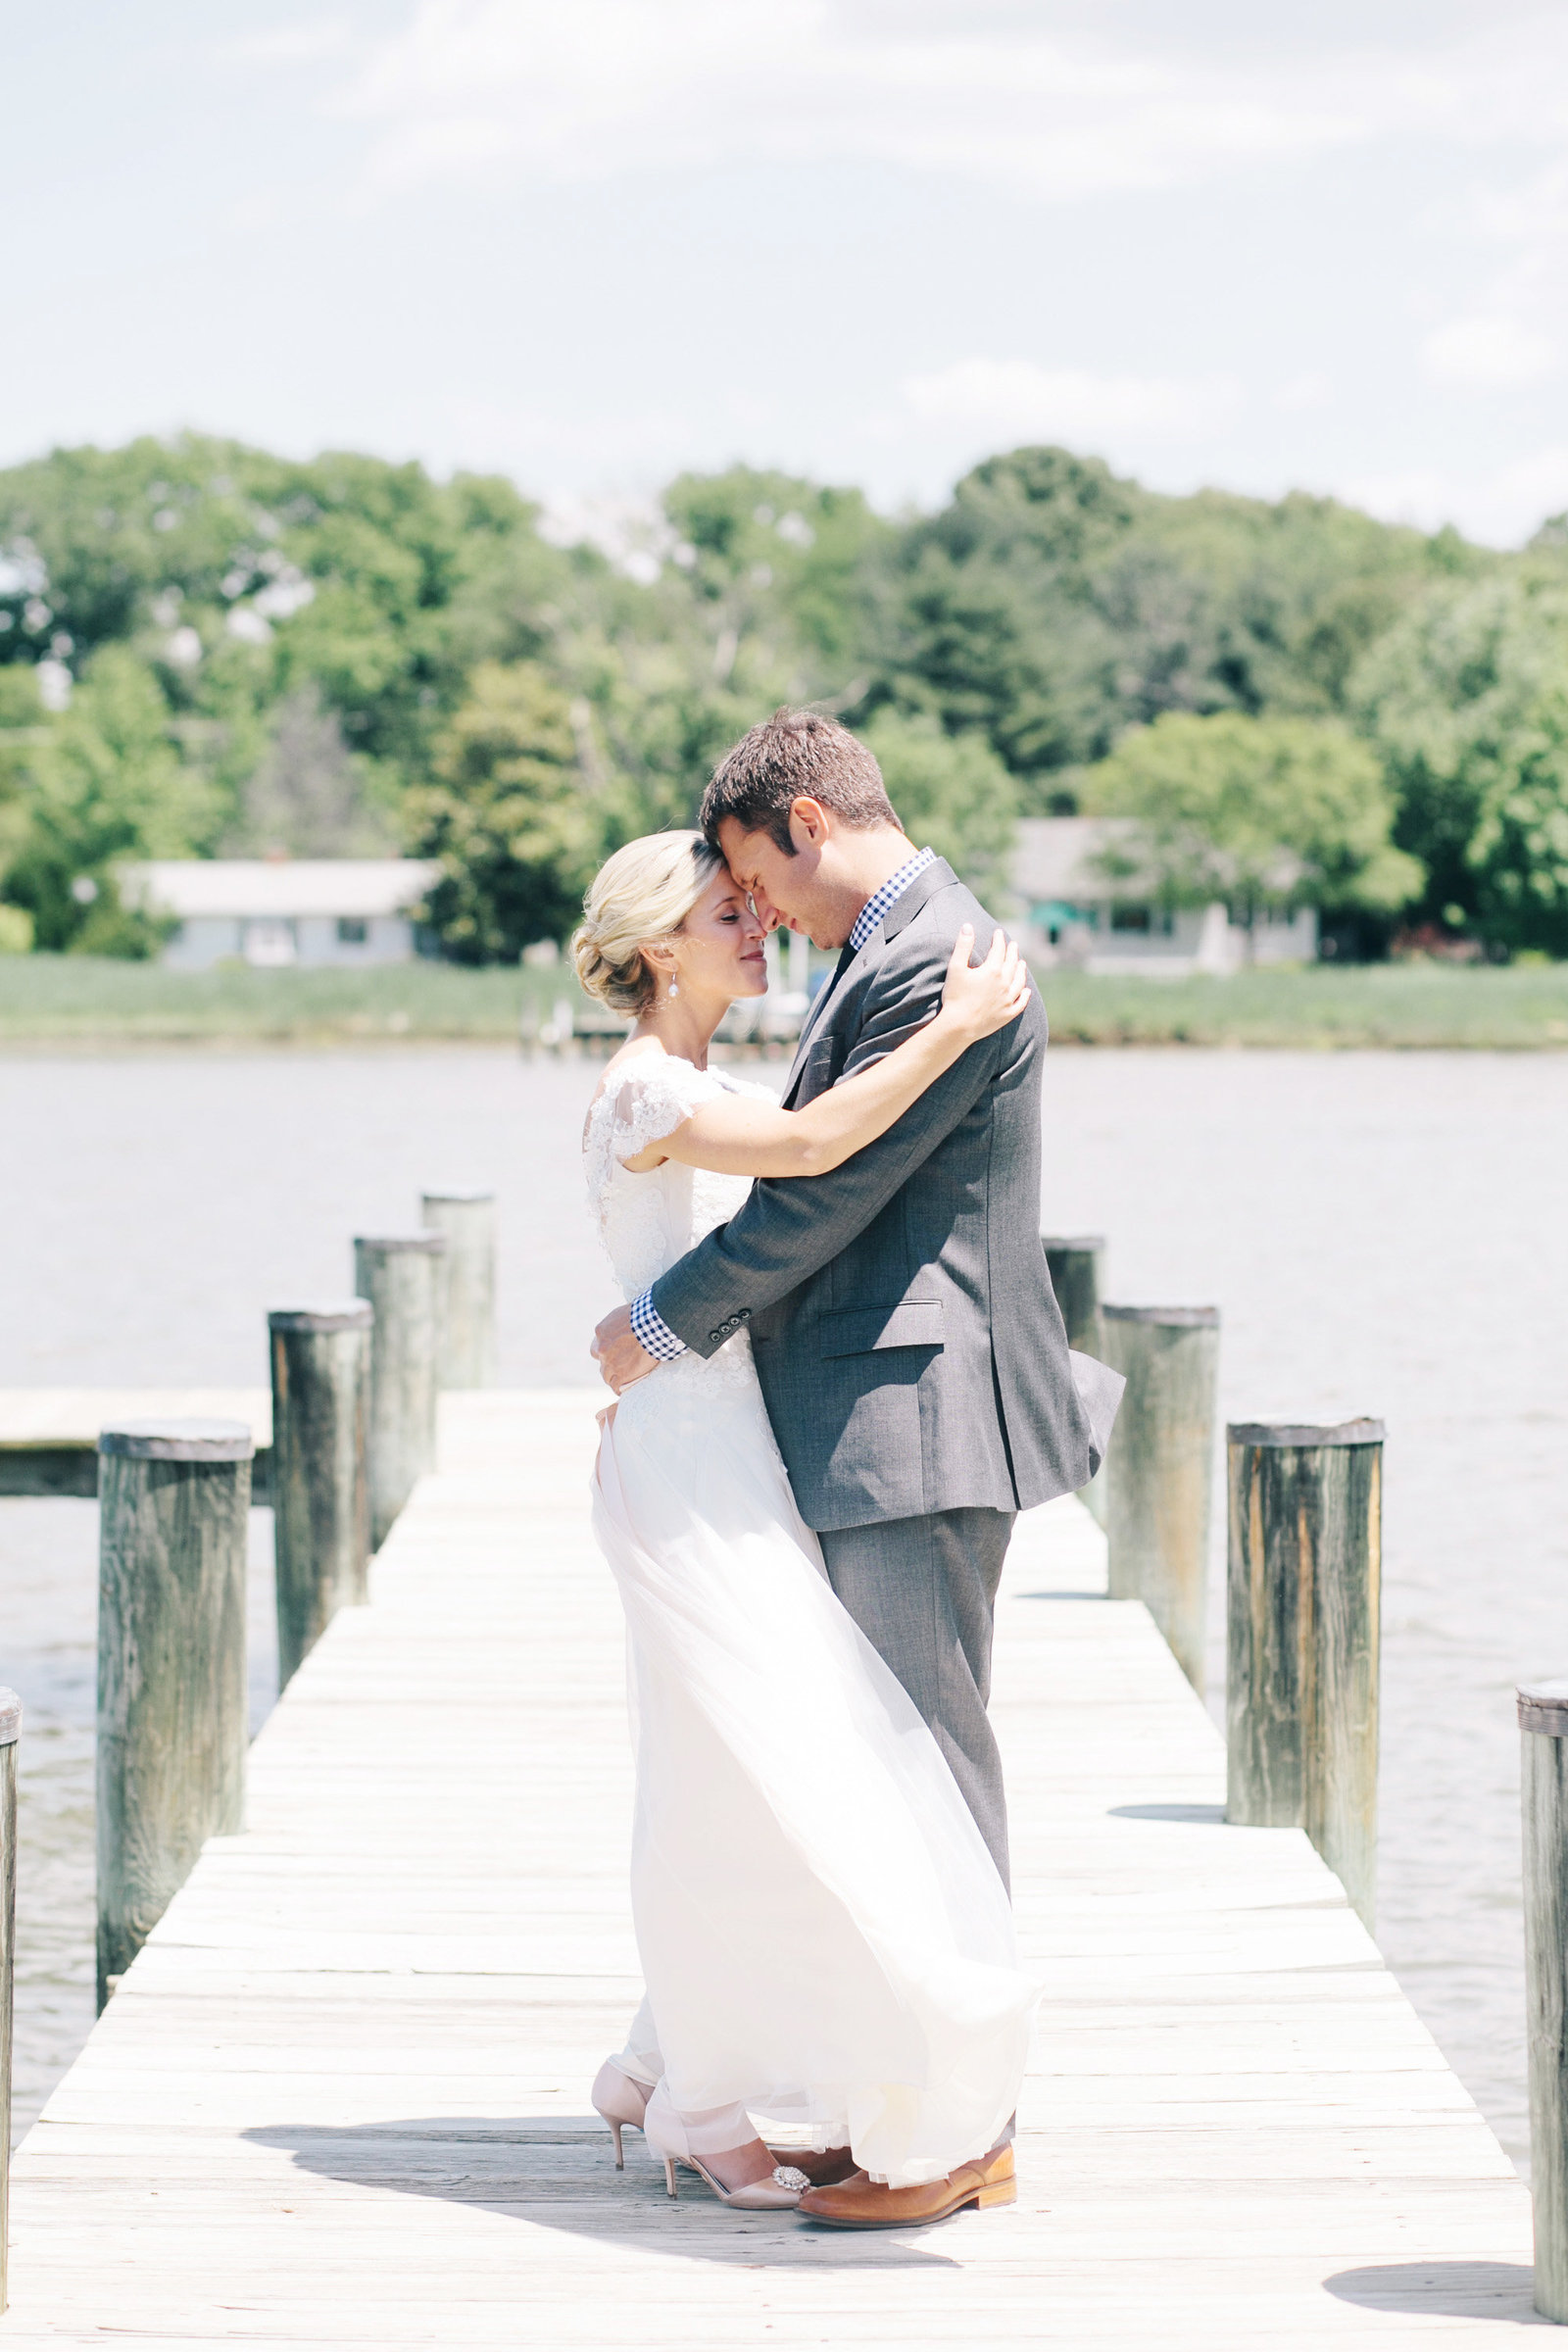 241Kelly_Brett_WeddingIMG_0277